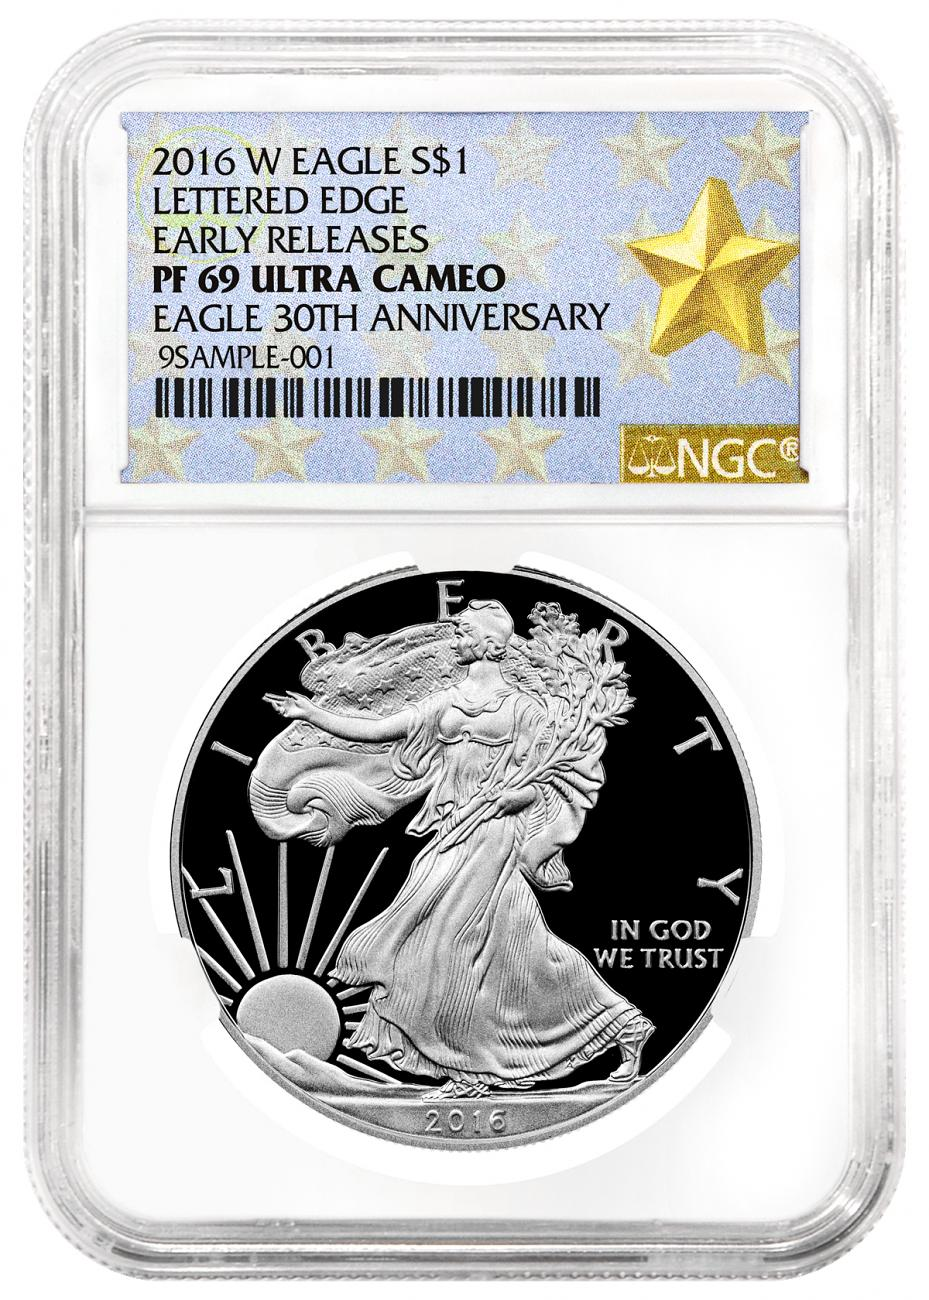 2016-W Proof American Silver Eagle - NGC PF69 UC Early Releases (West Point Star Label)